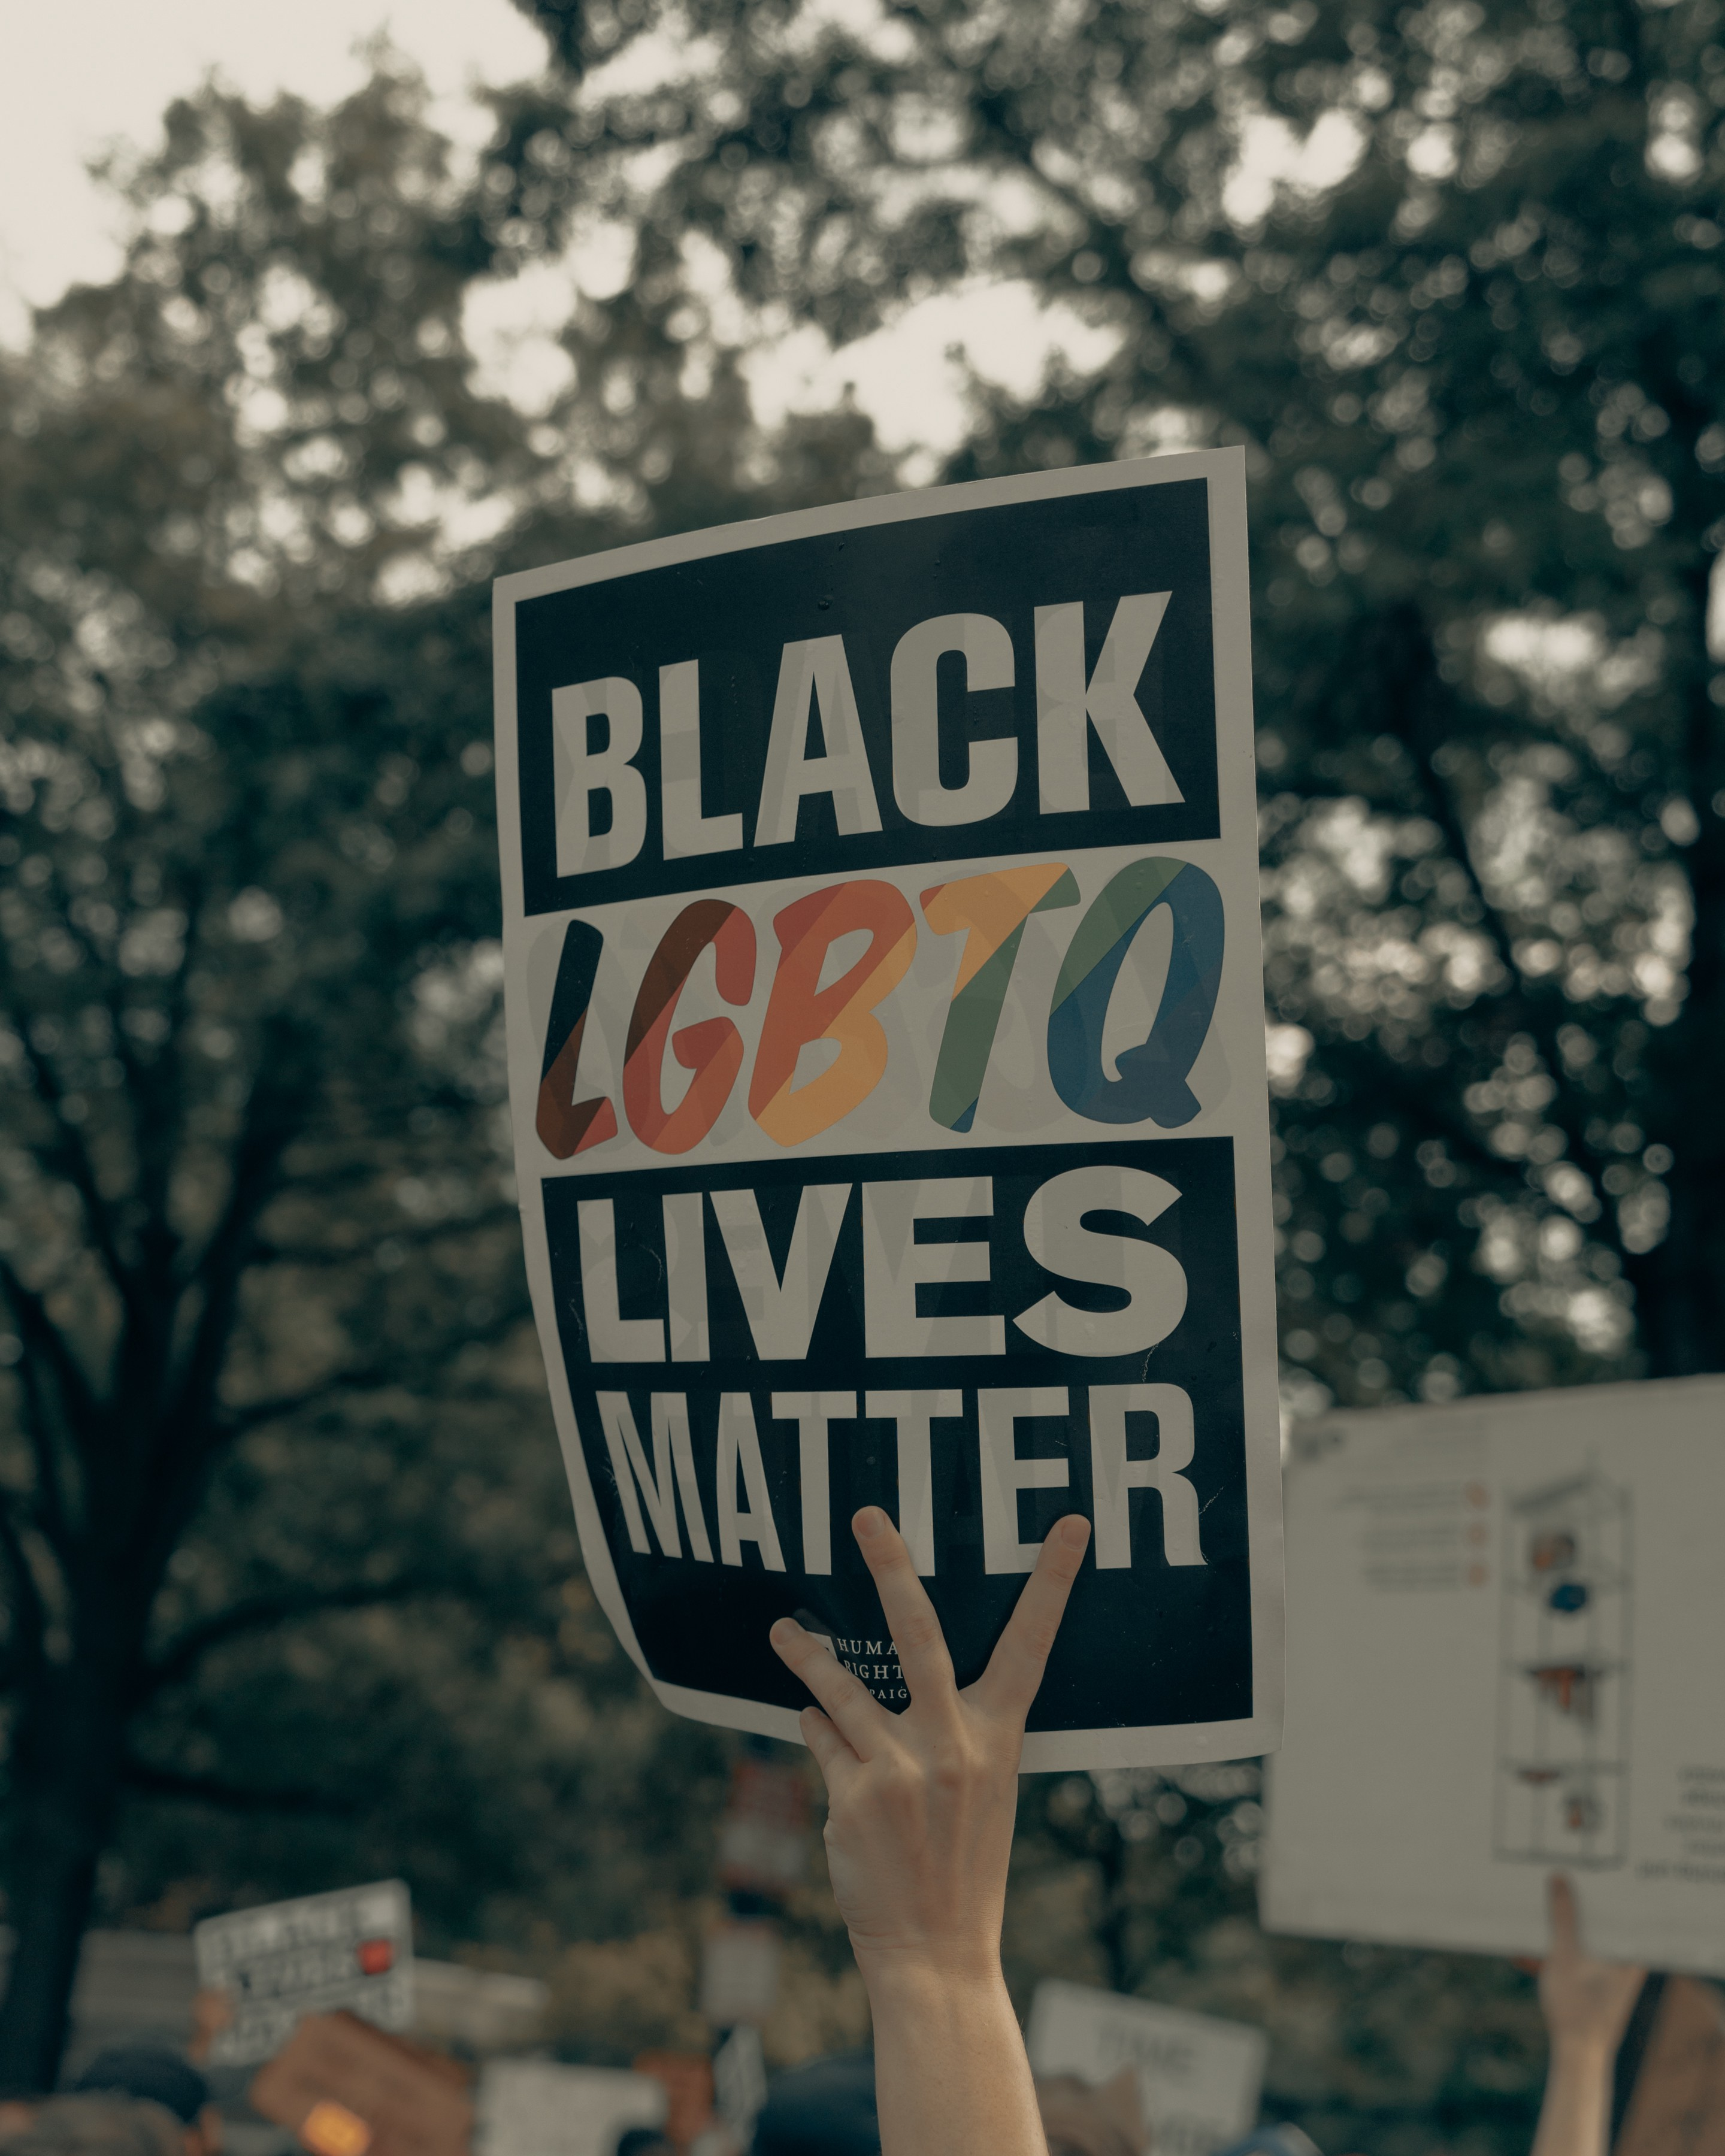 Drawing Inspiration from the LGBTQ+ Movement for Black Lives Matter